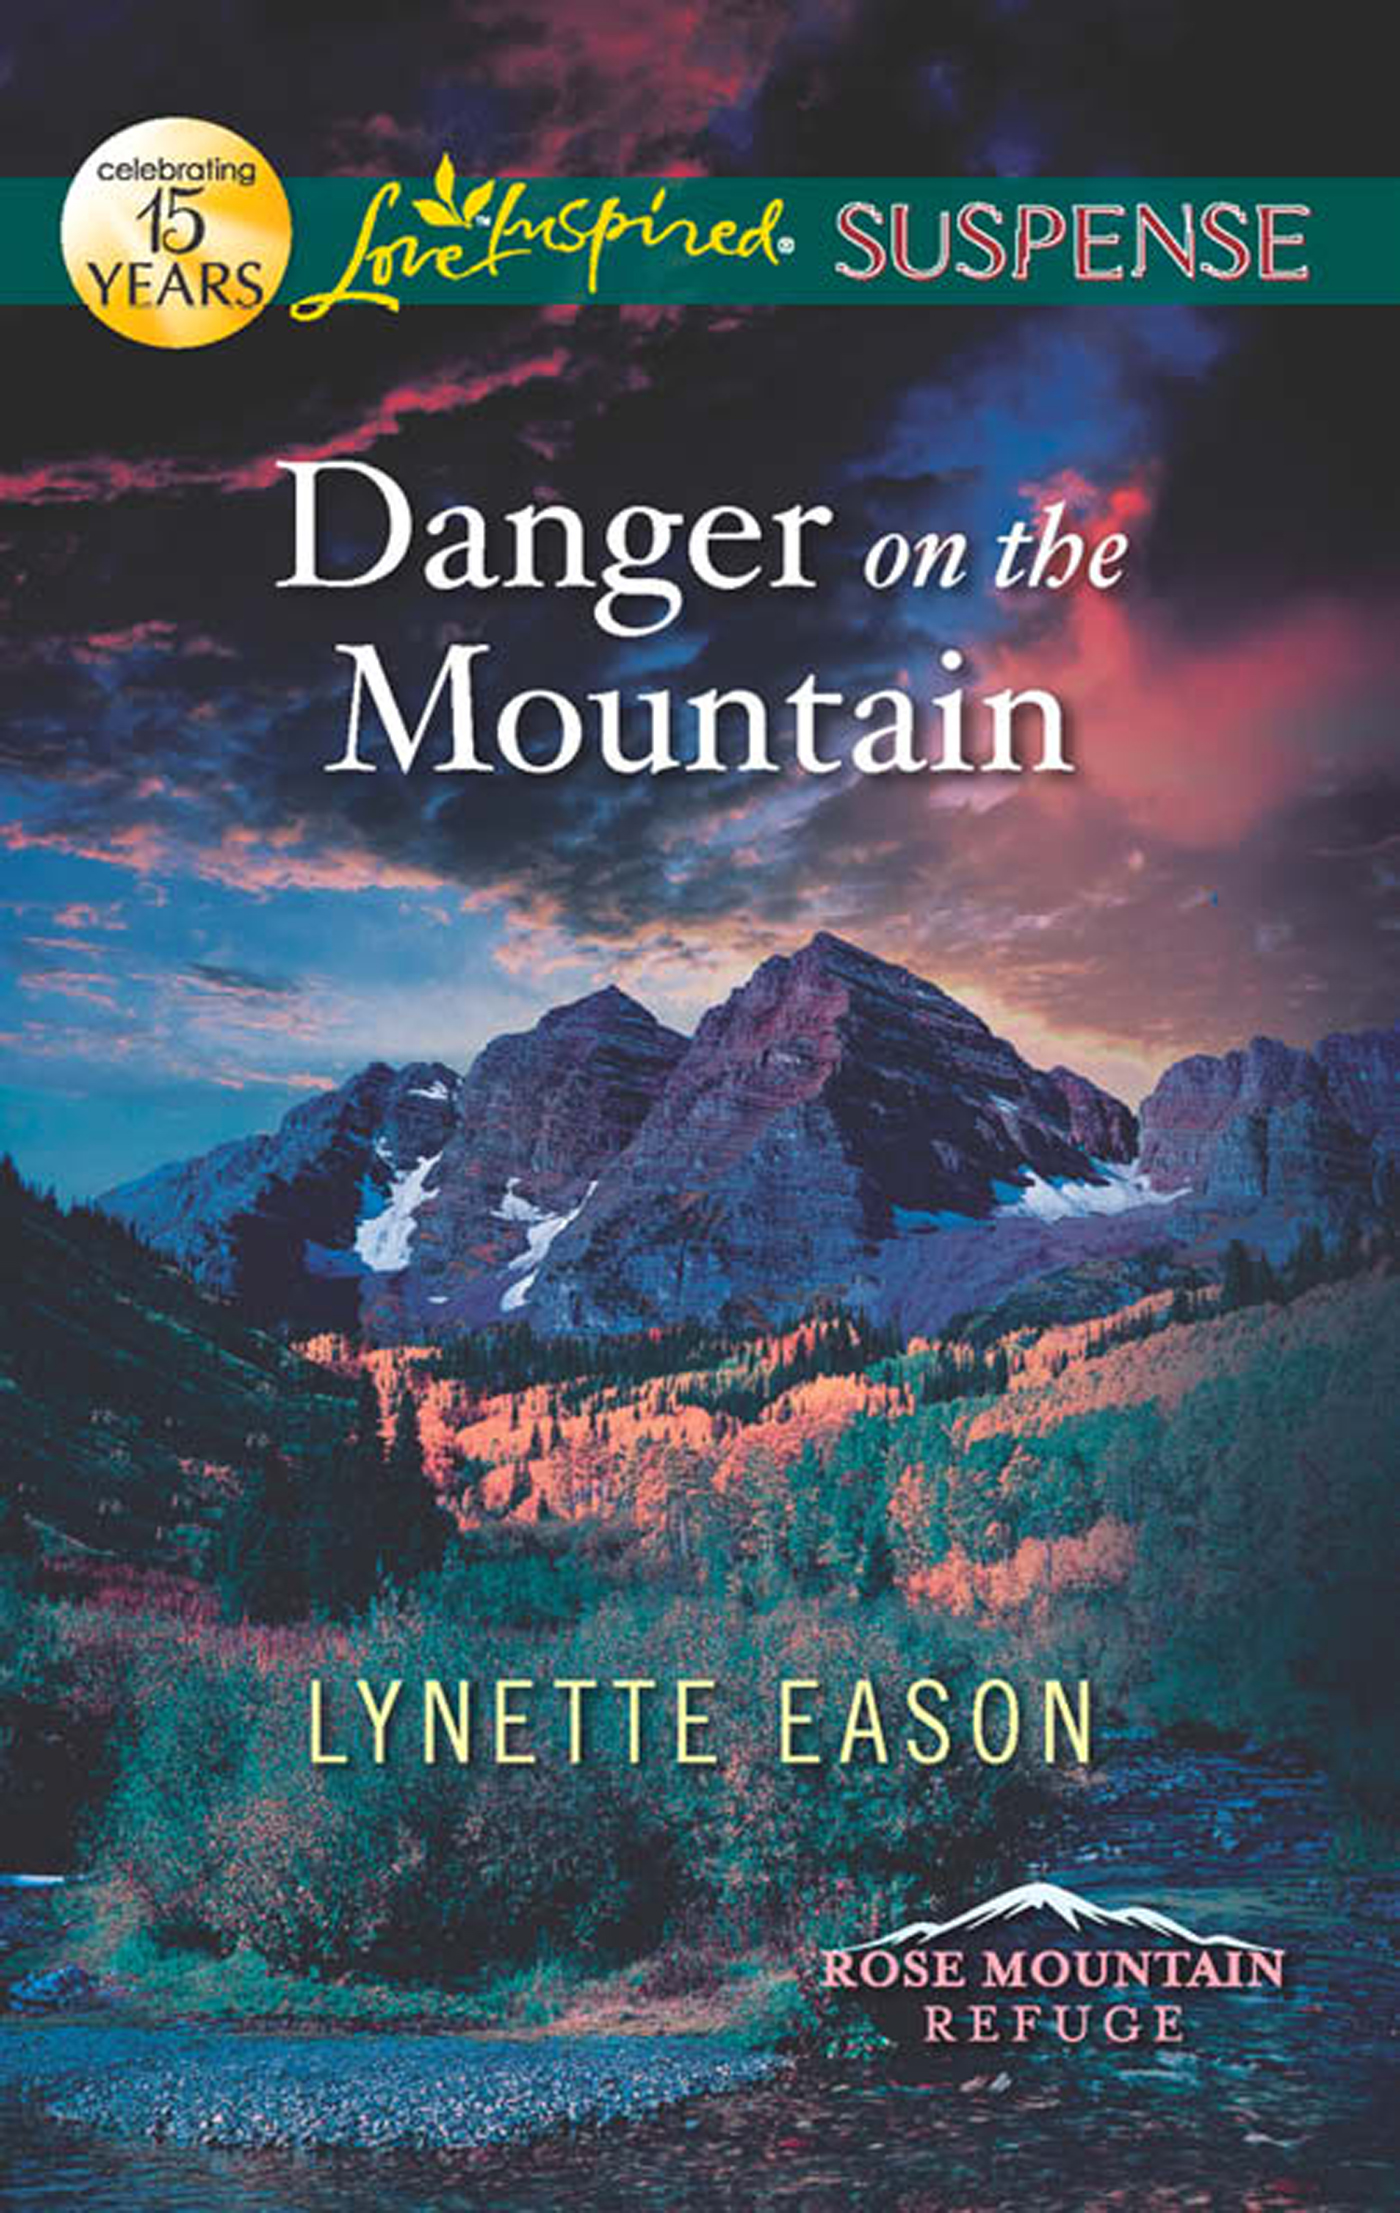 Danger on the Mountain (Mills & Boon Love Inspired Suspense) (Rose Mountain Refuge - Book 3)